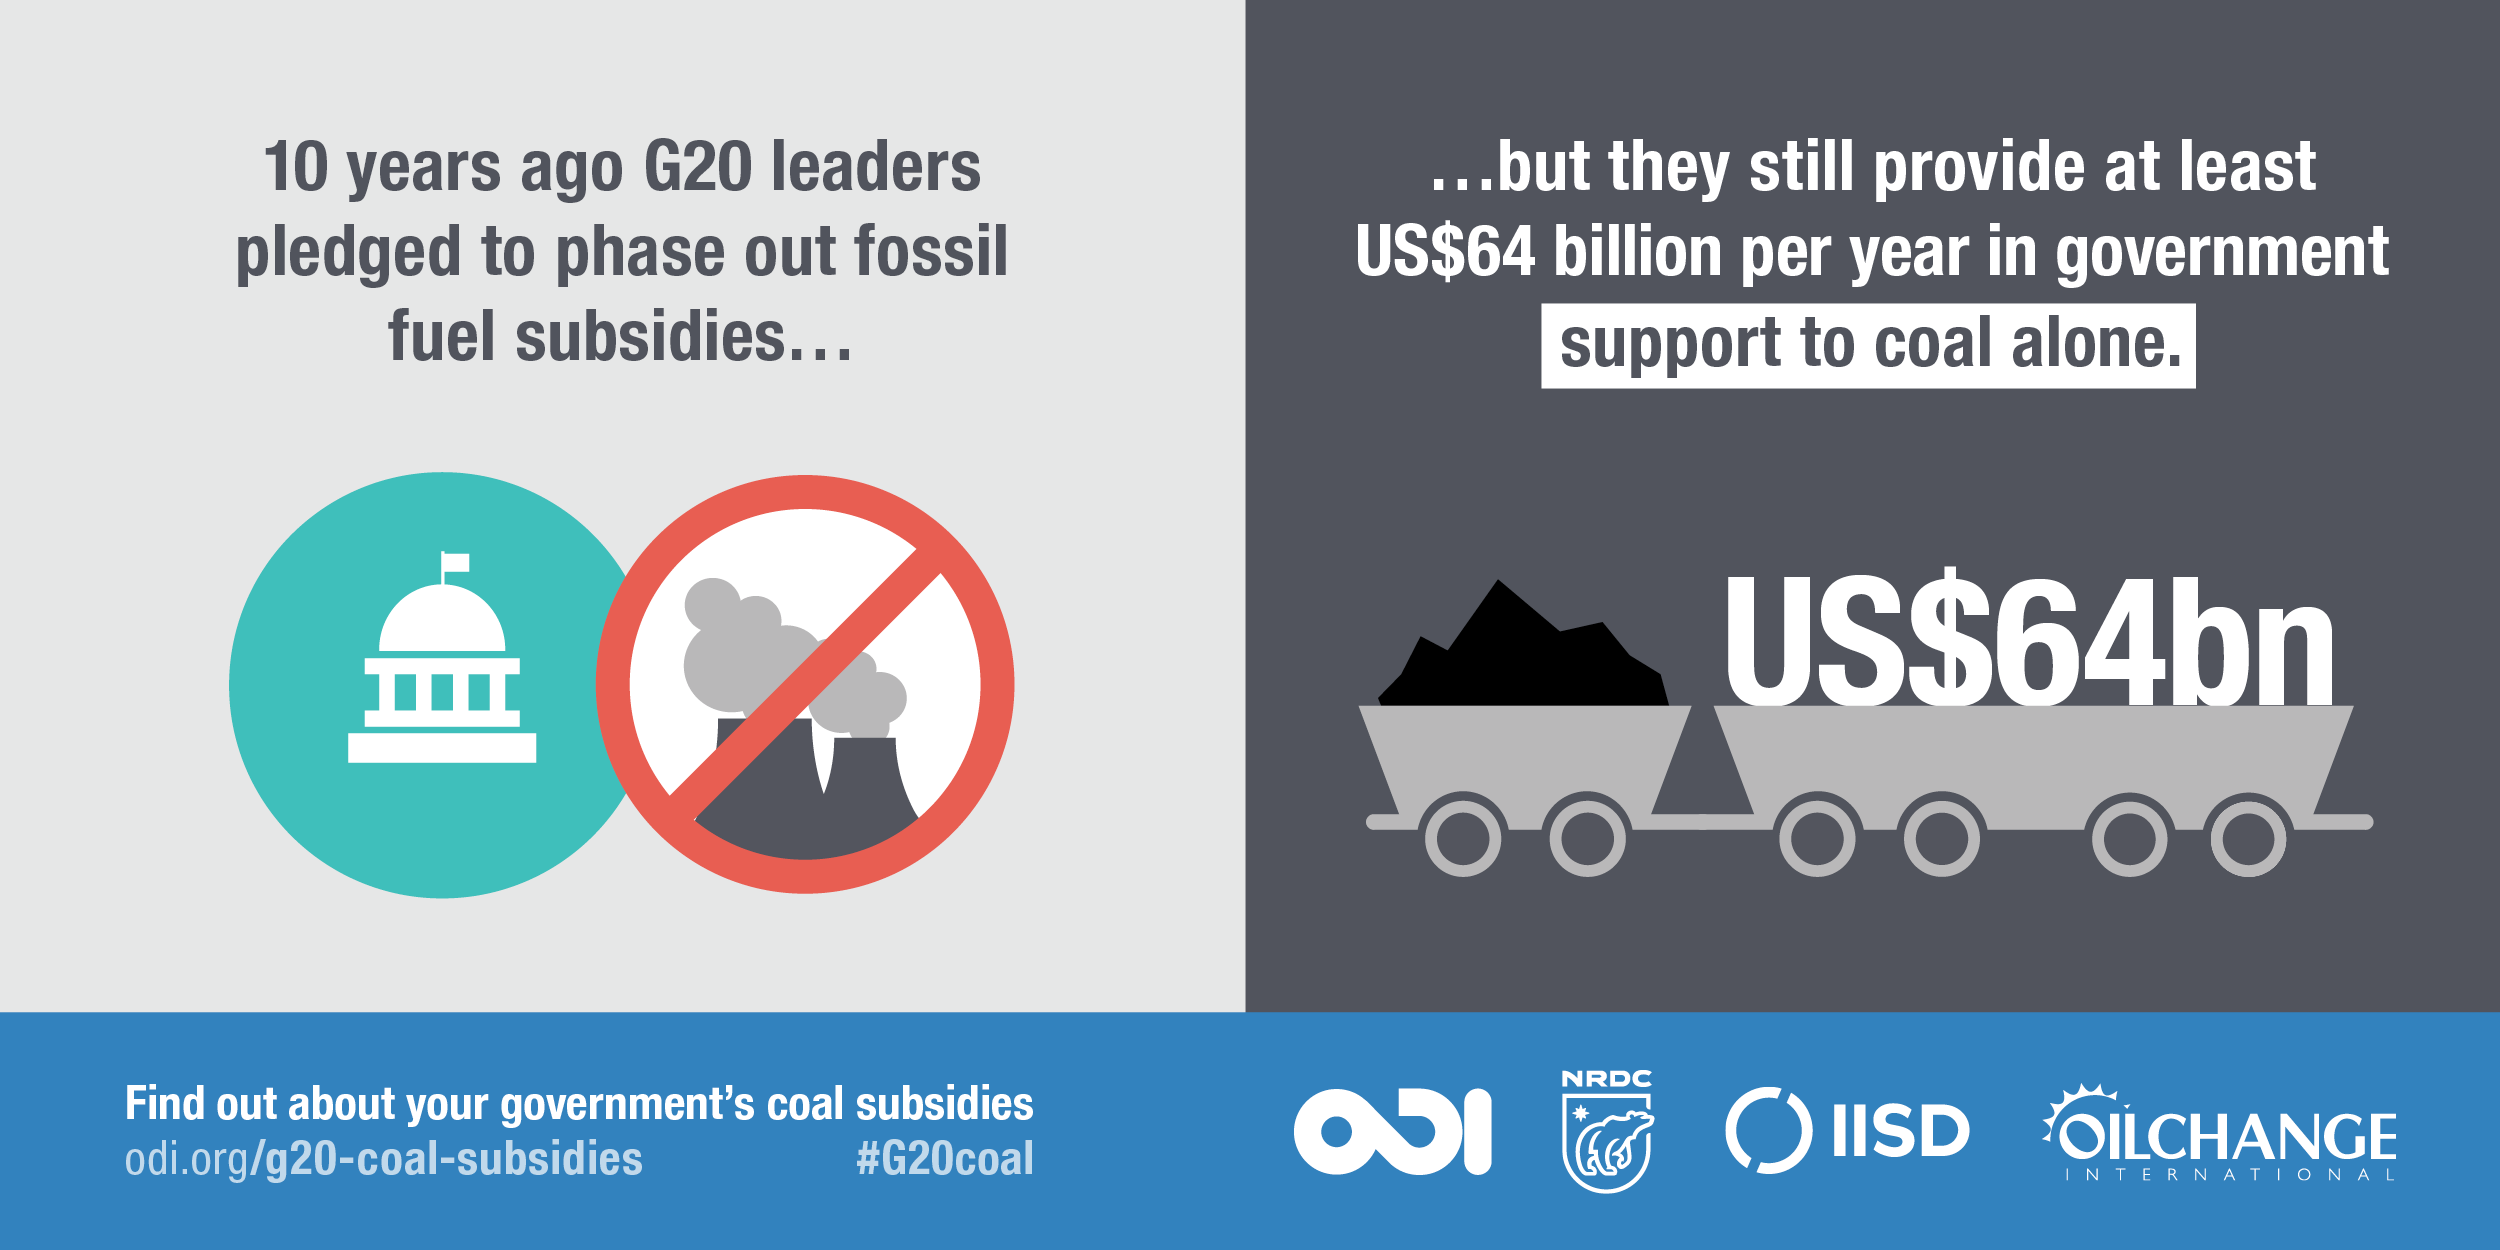 10 years ago G20 leaders pledged to phase fossil fuel subsidies... but they still provide at least US$64 billion per year in government support to coal alone. Image: ODI